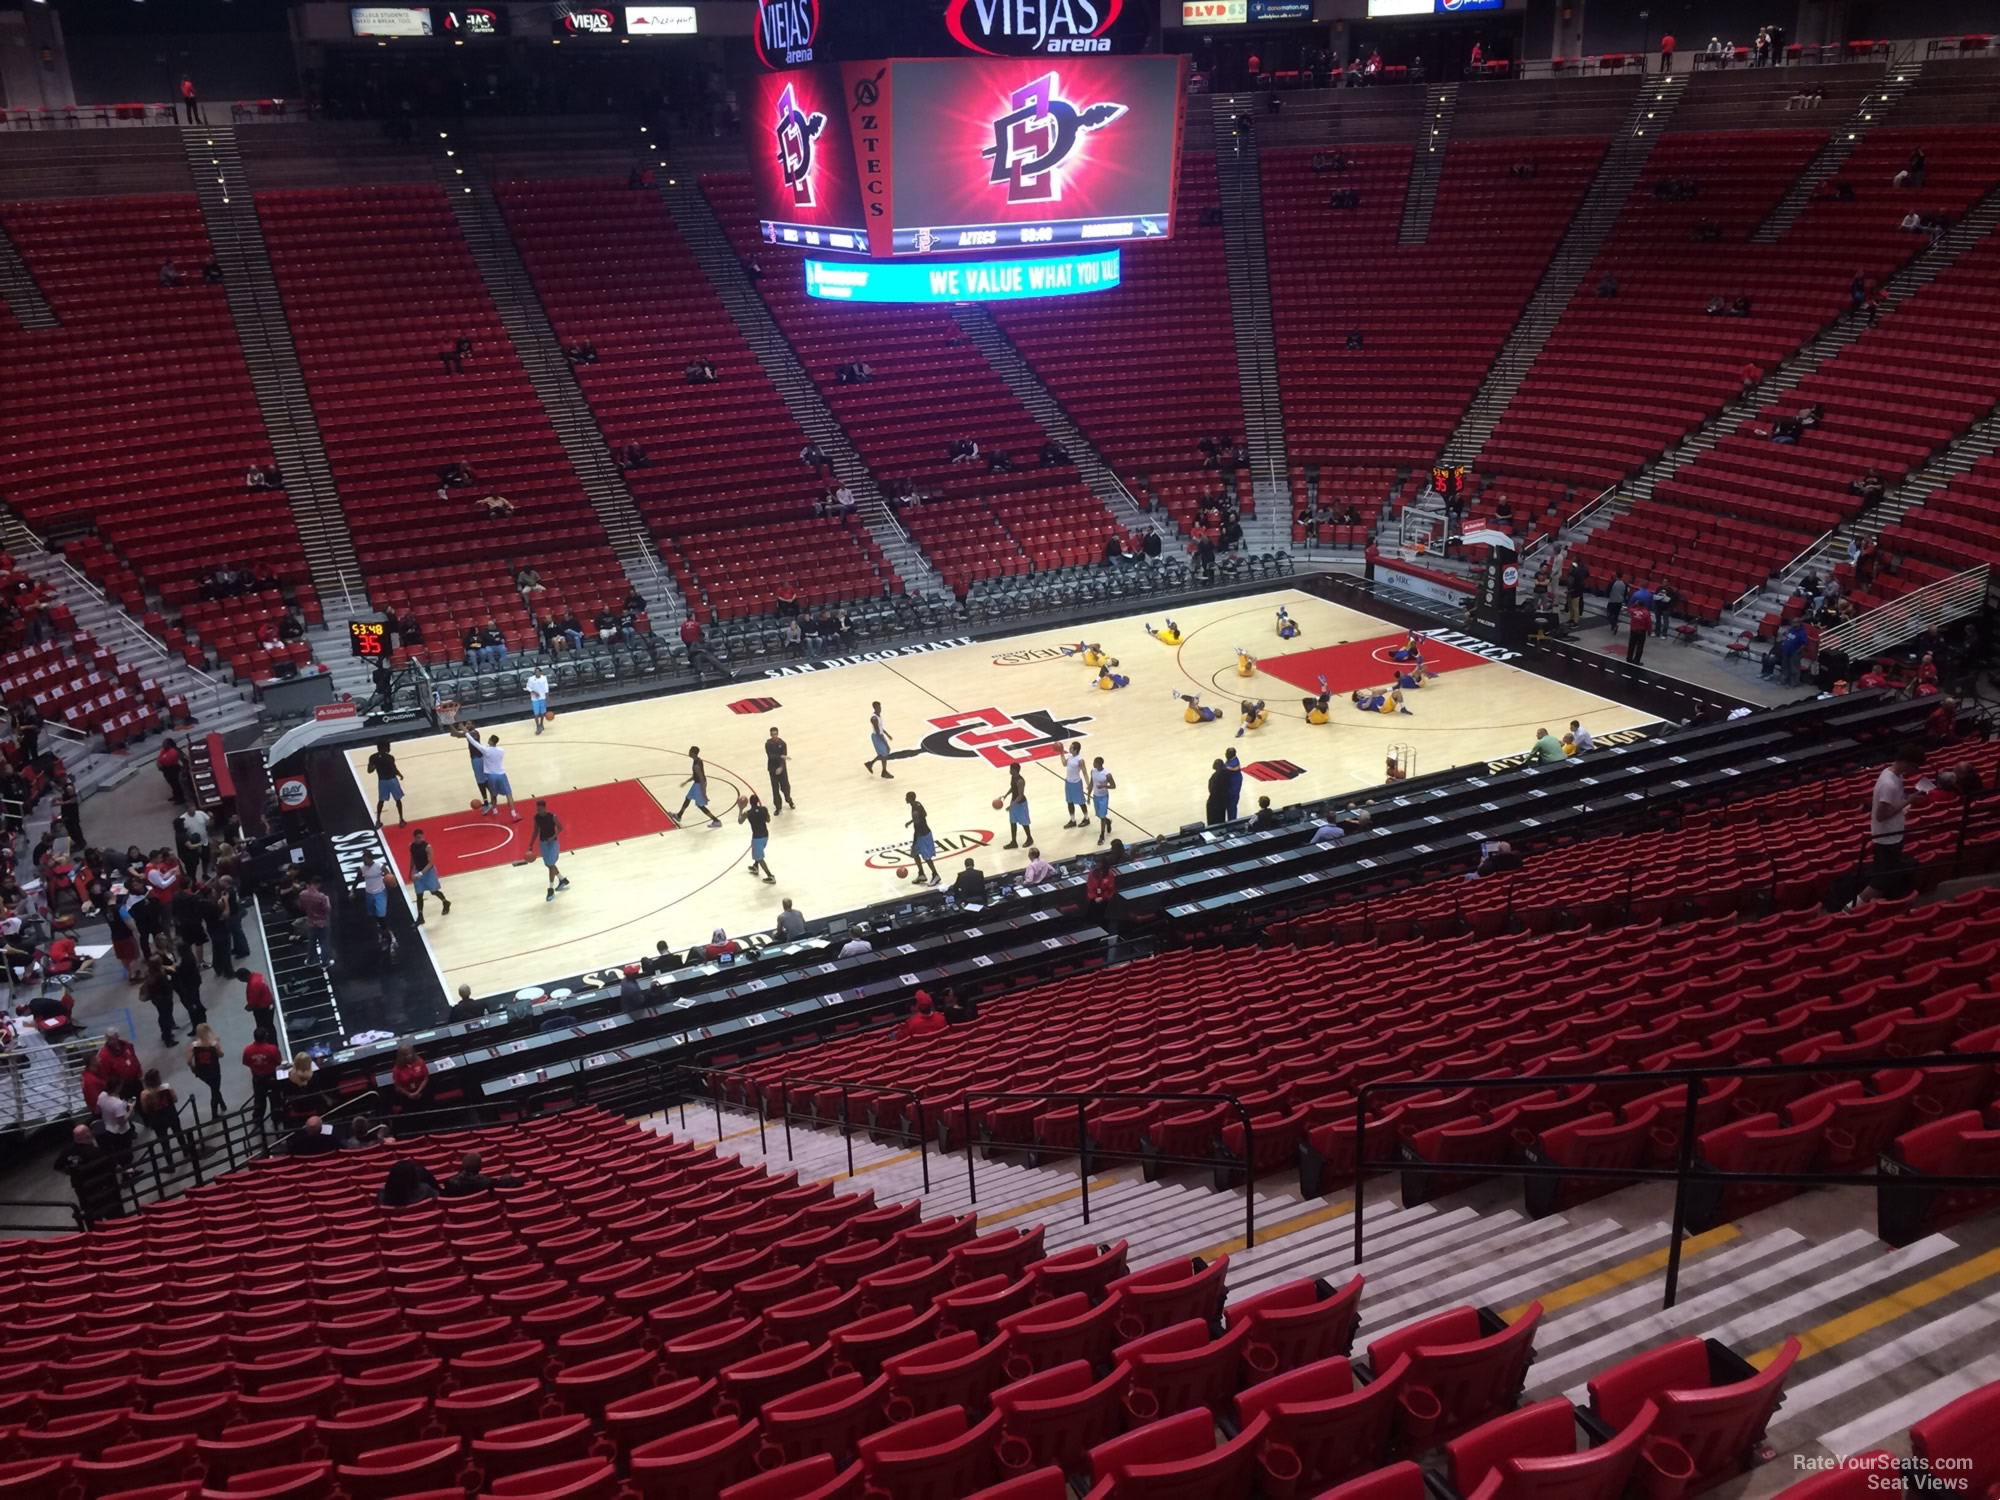 Section P seat view